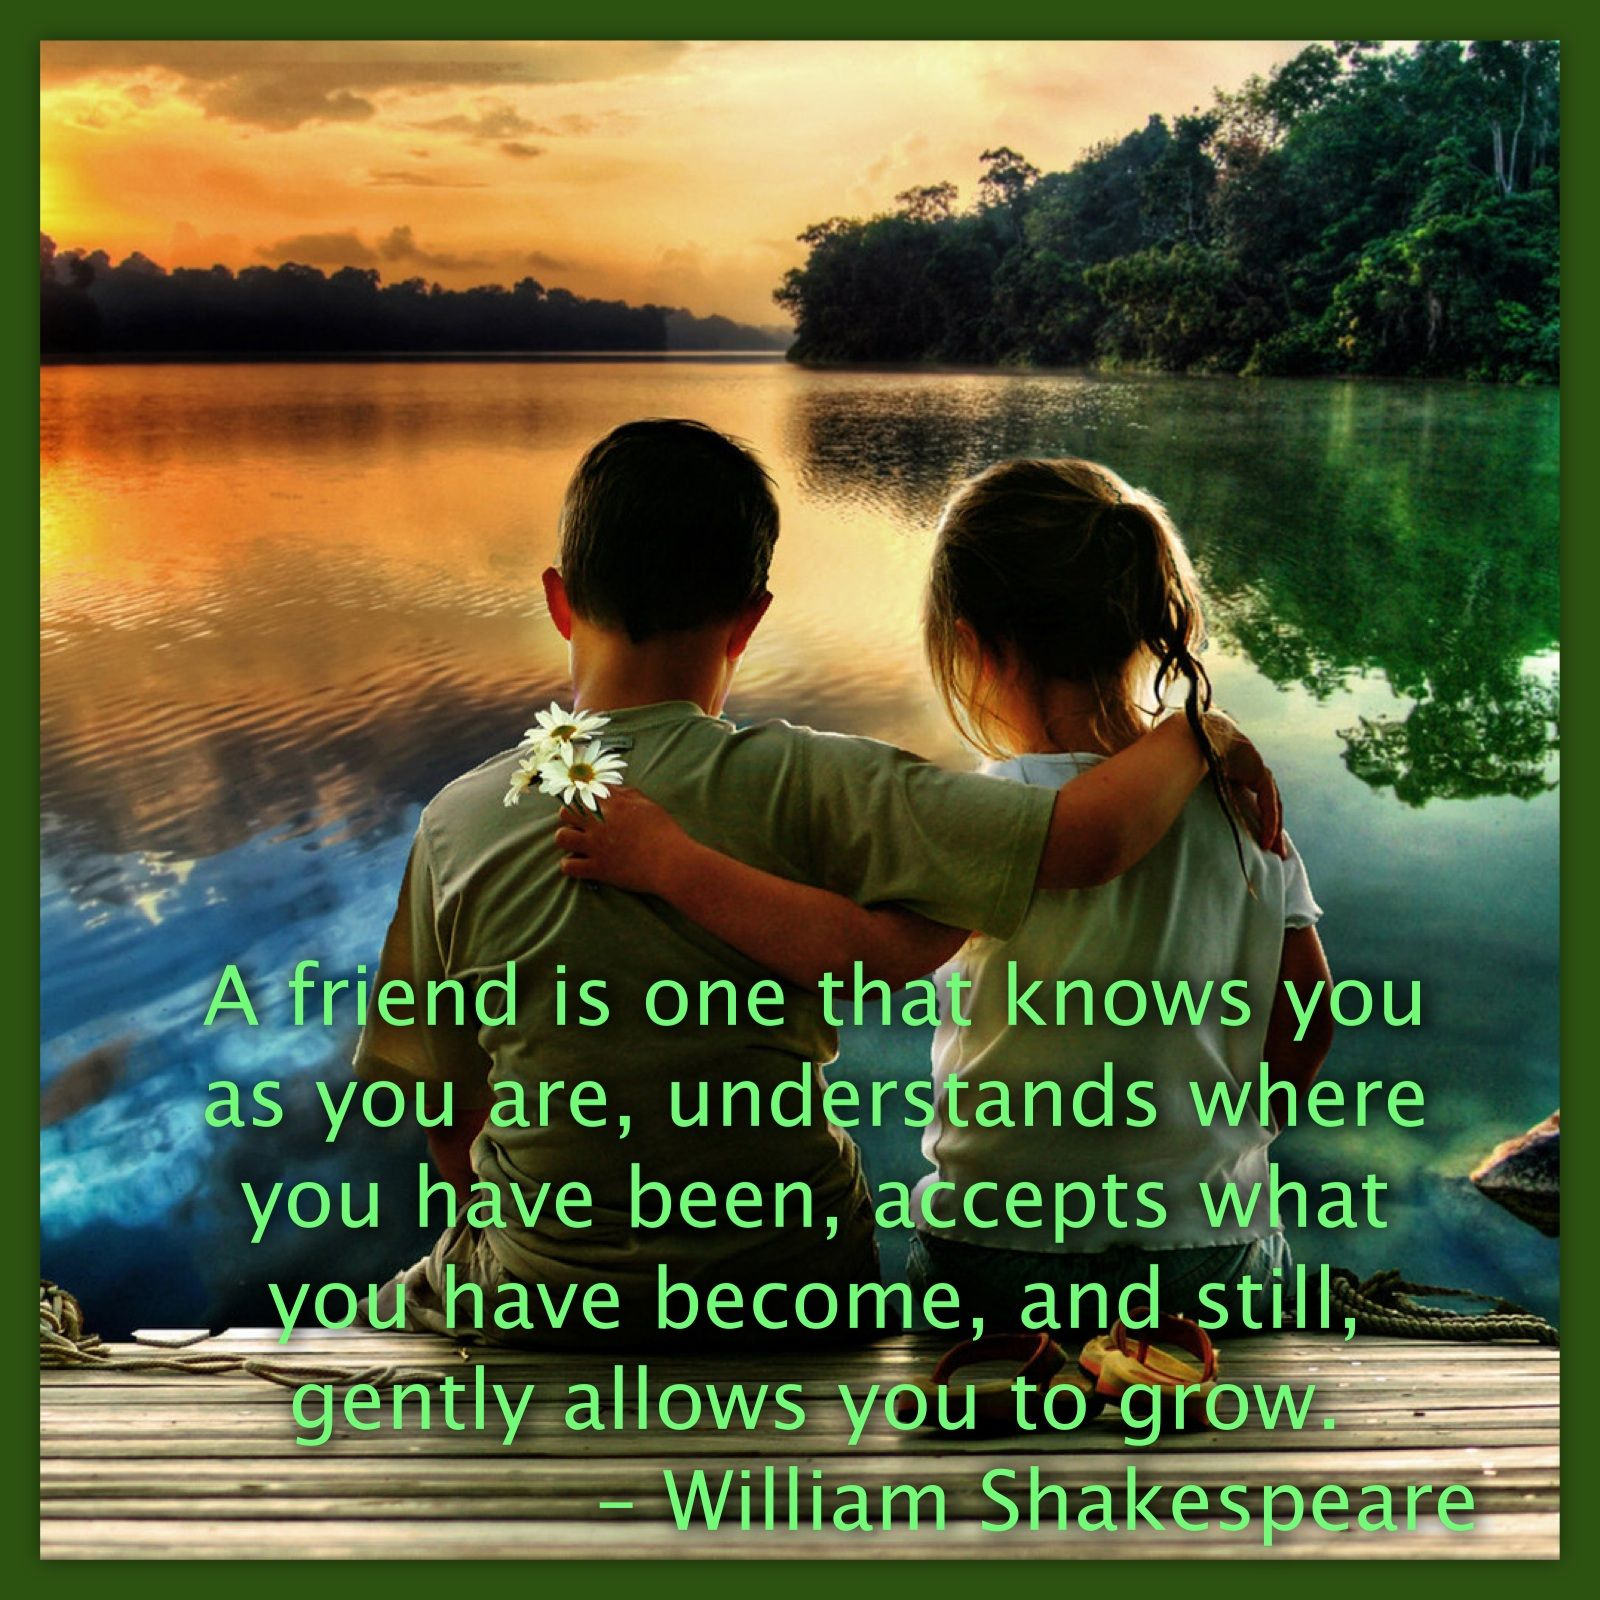 William Shakespeare Quotes About Friendship A Friend Is One That Knows You As You Are Understands Where You